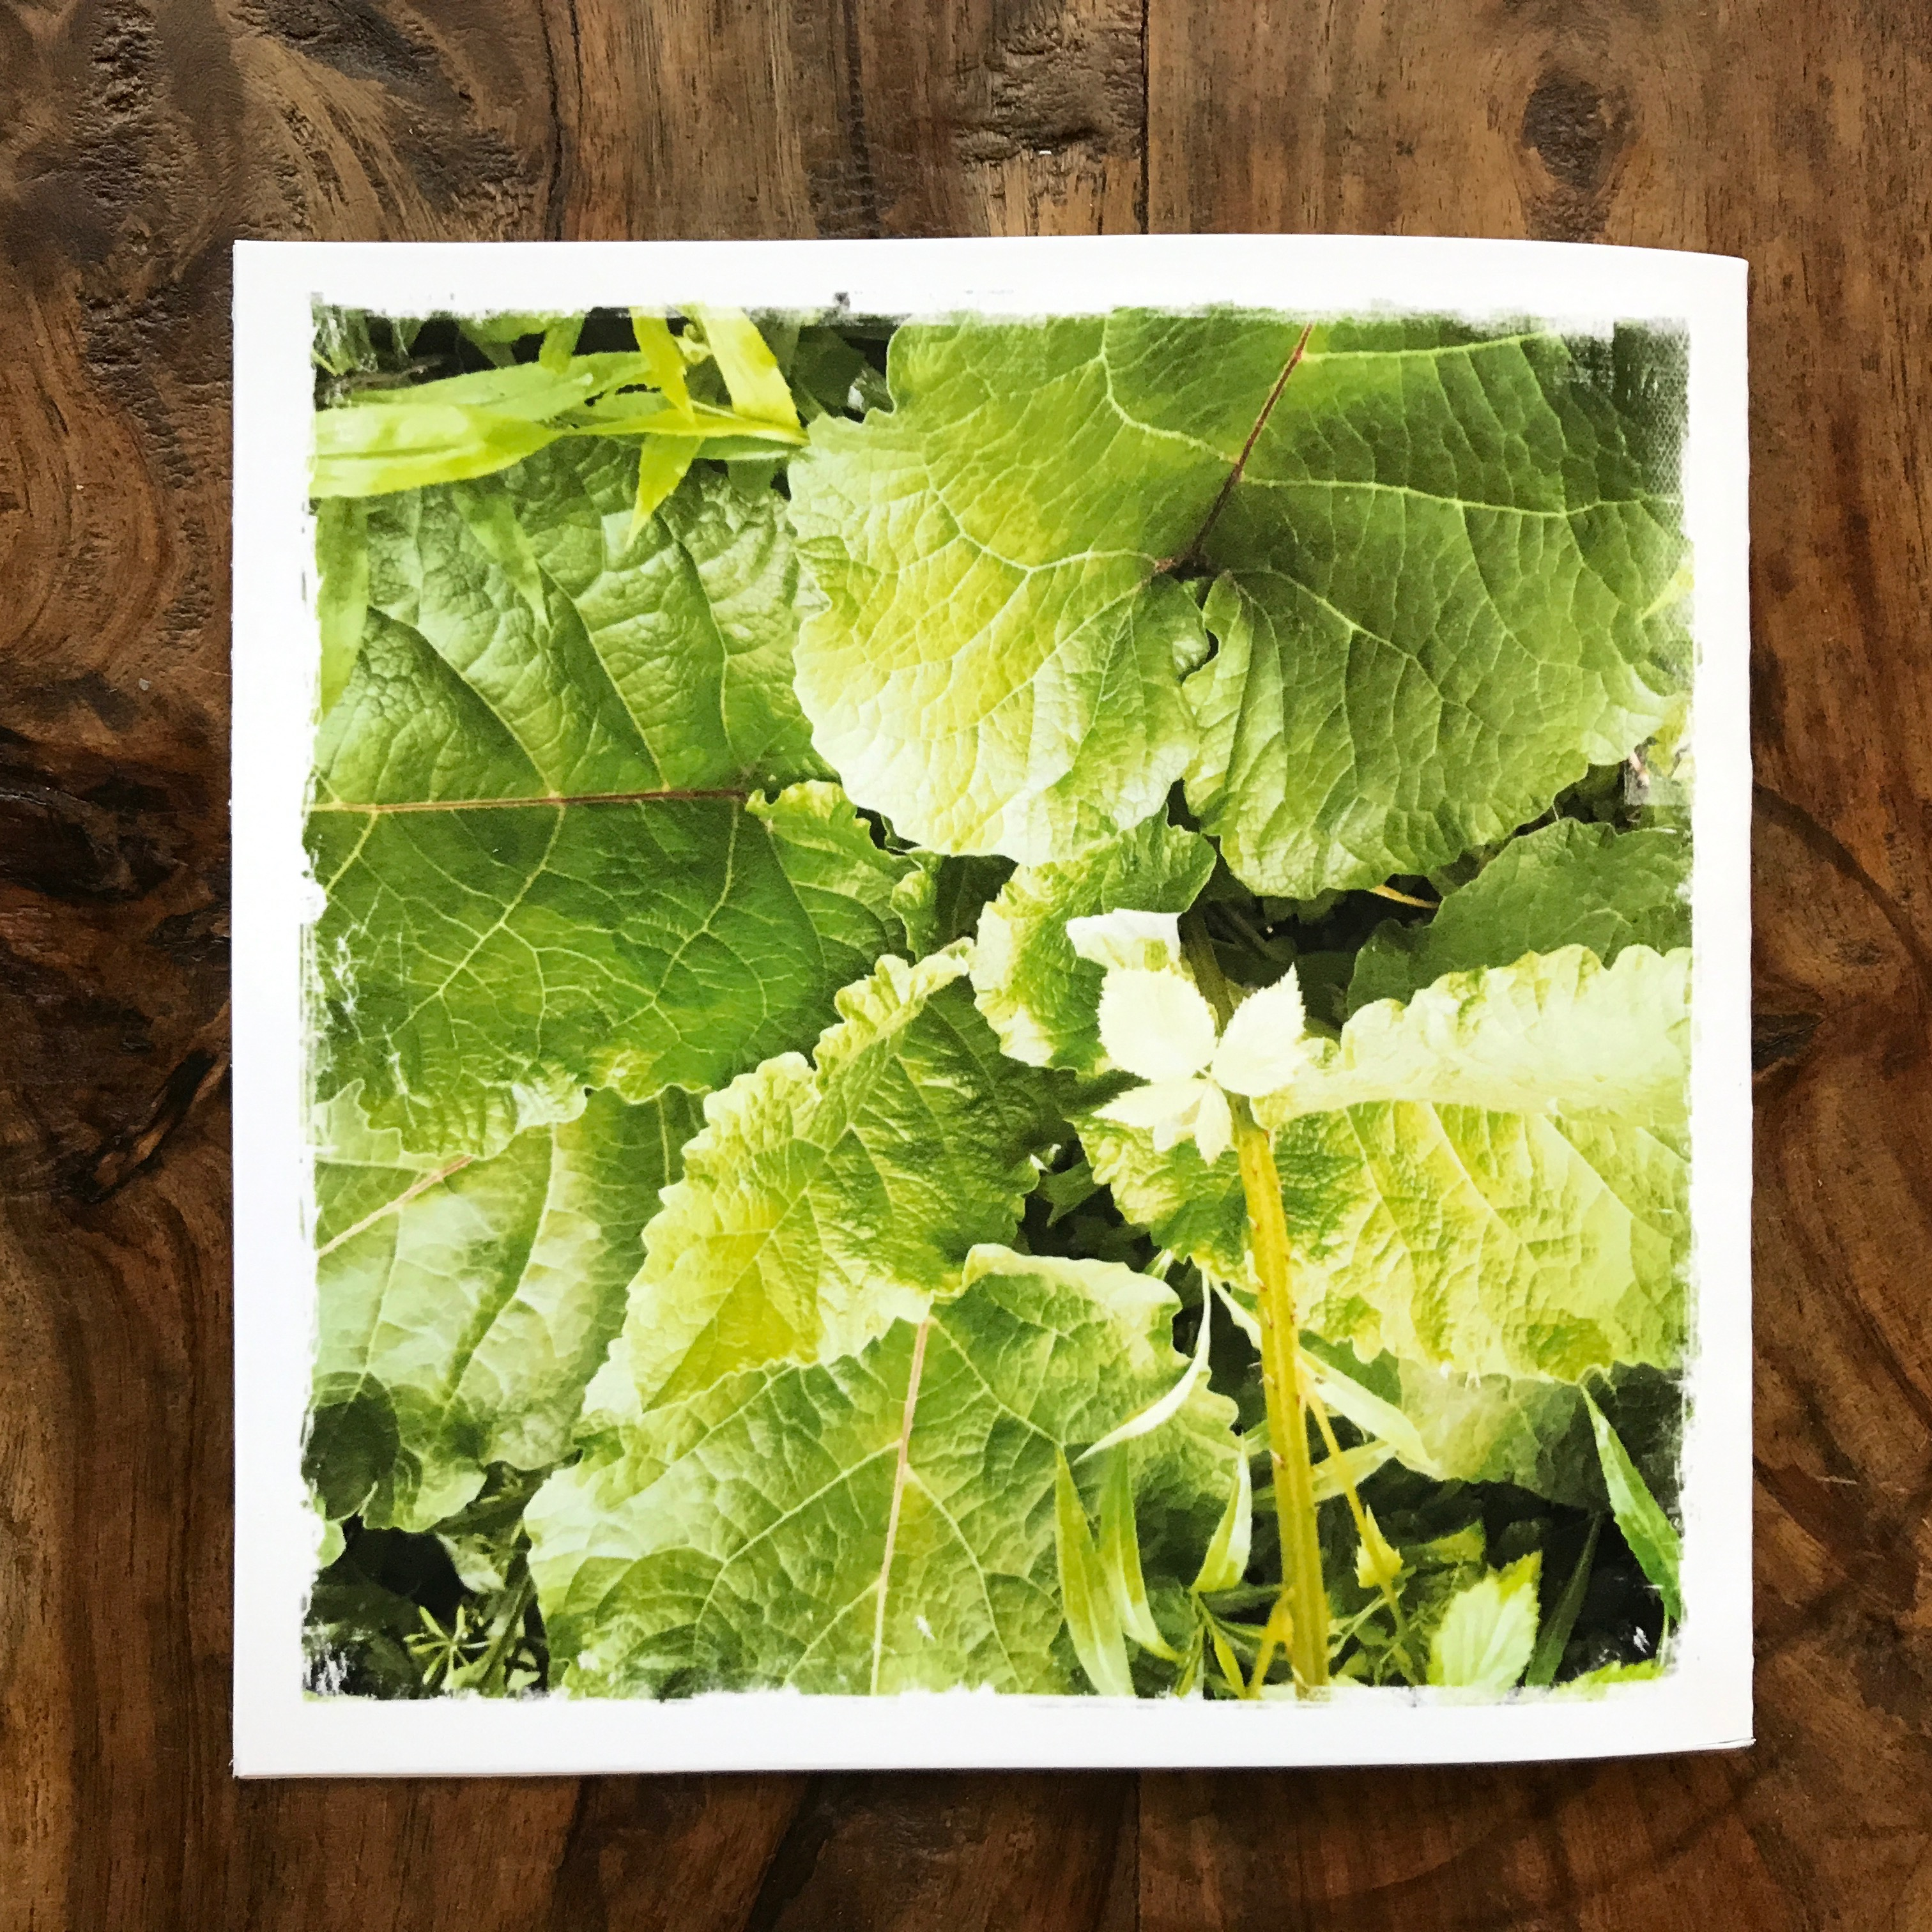 Burdock Note Card, photo by Barbara Sinclair